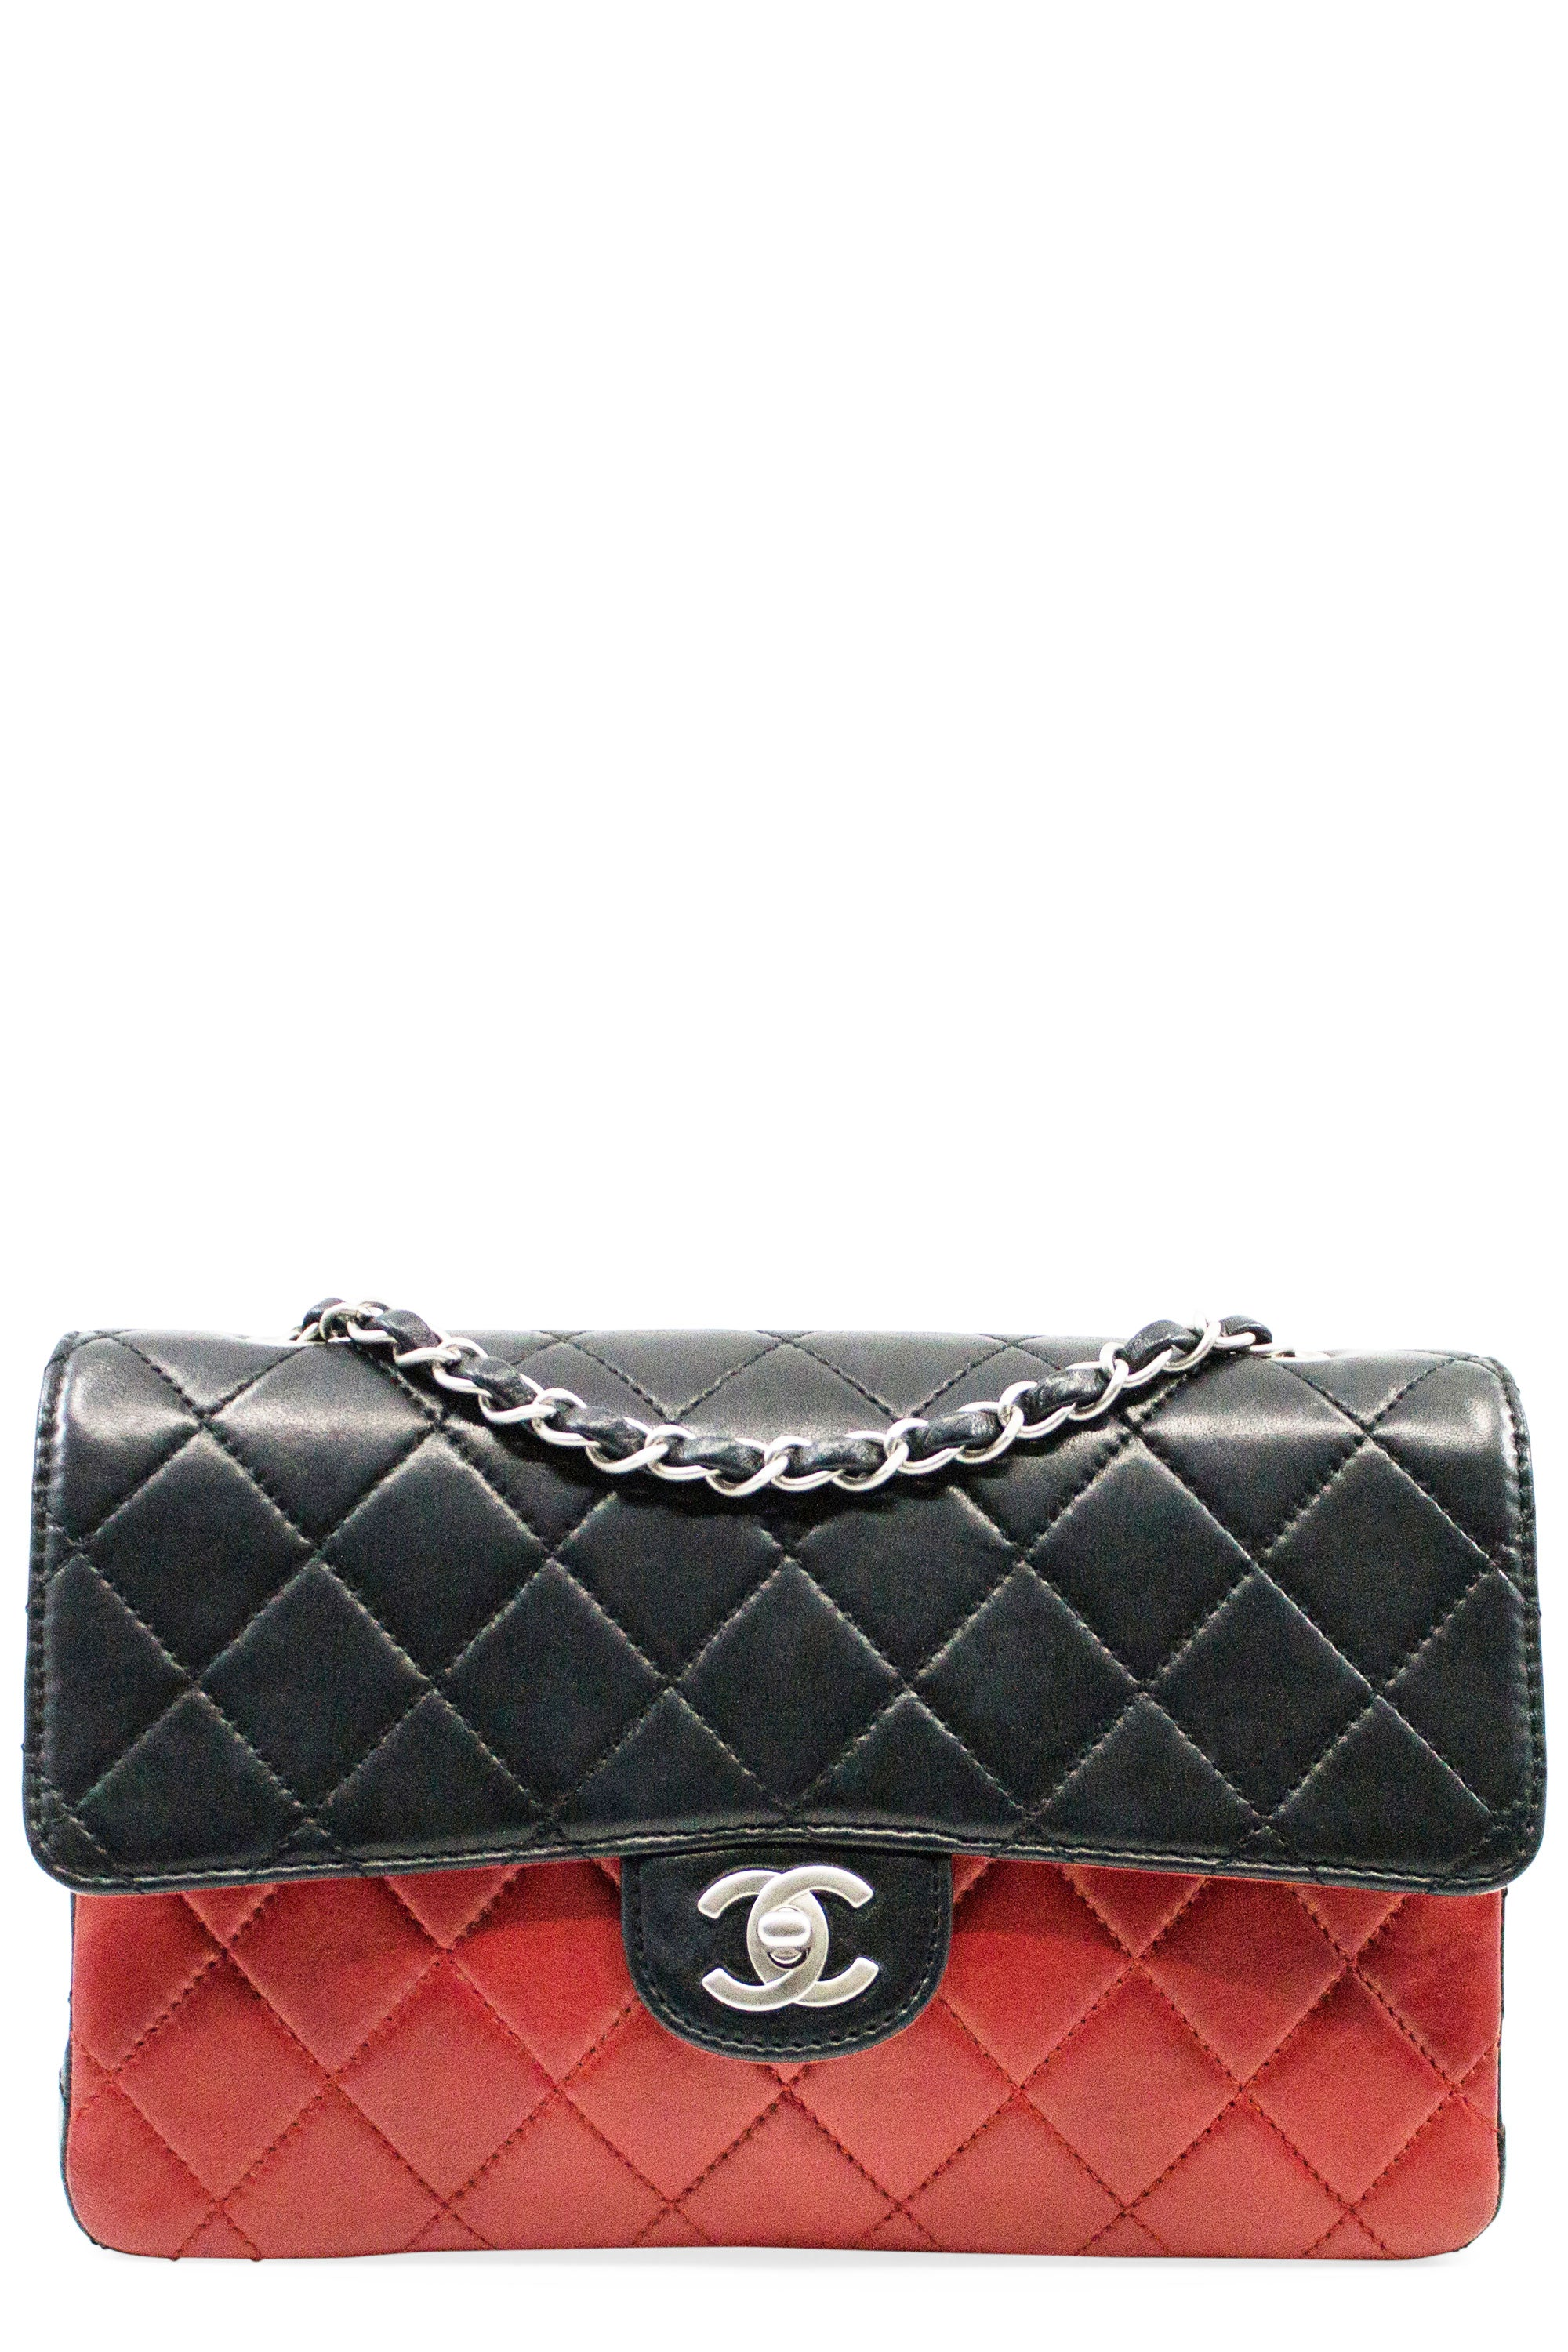 CHANEL Flap Bag Medium Red Black Frontalansicht Silber Hardware